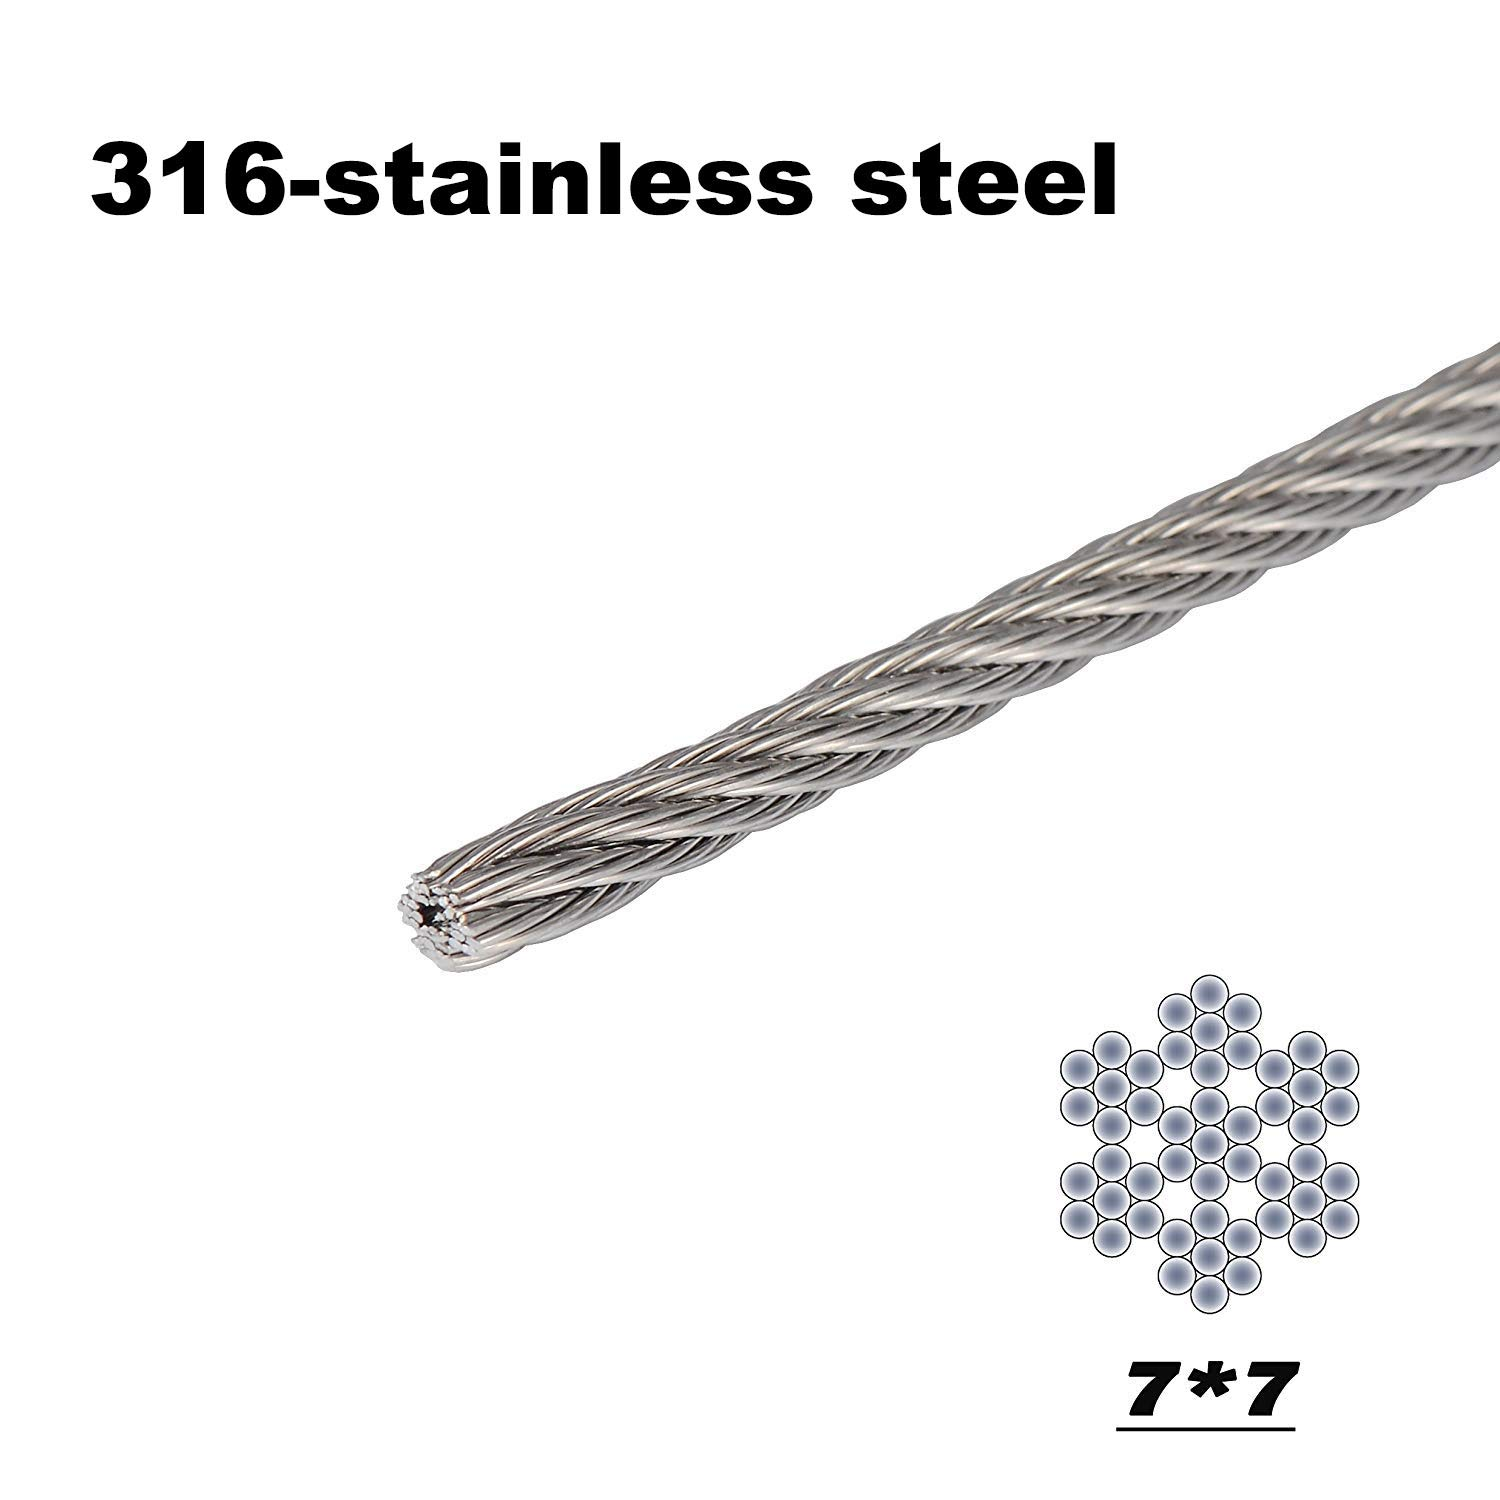 FOLUXING 316 Stainless Steel Wire Rope 1/8'' Aircraft Wire Rope Cable 7x7 for Railing Kit,Decking, DIY Balustrade(164Ft) by FOLUXING (Image #3)